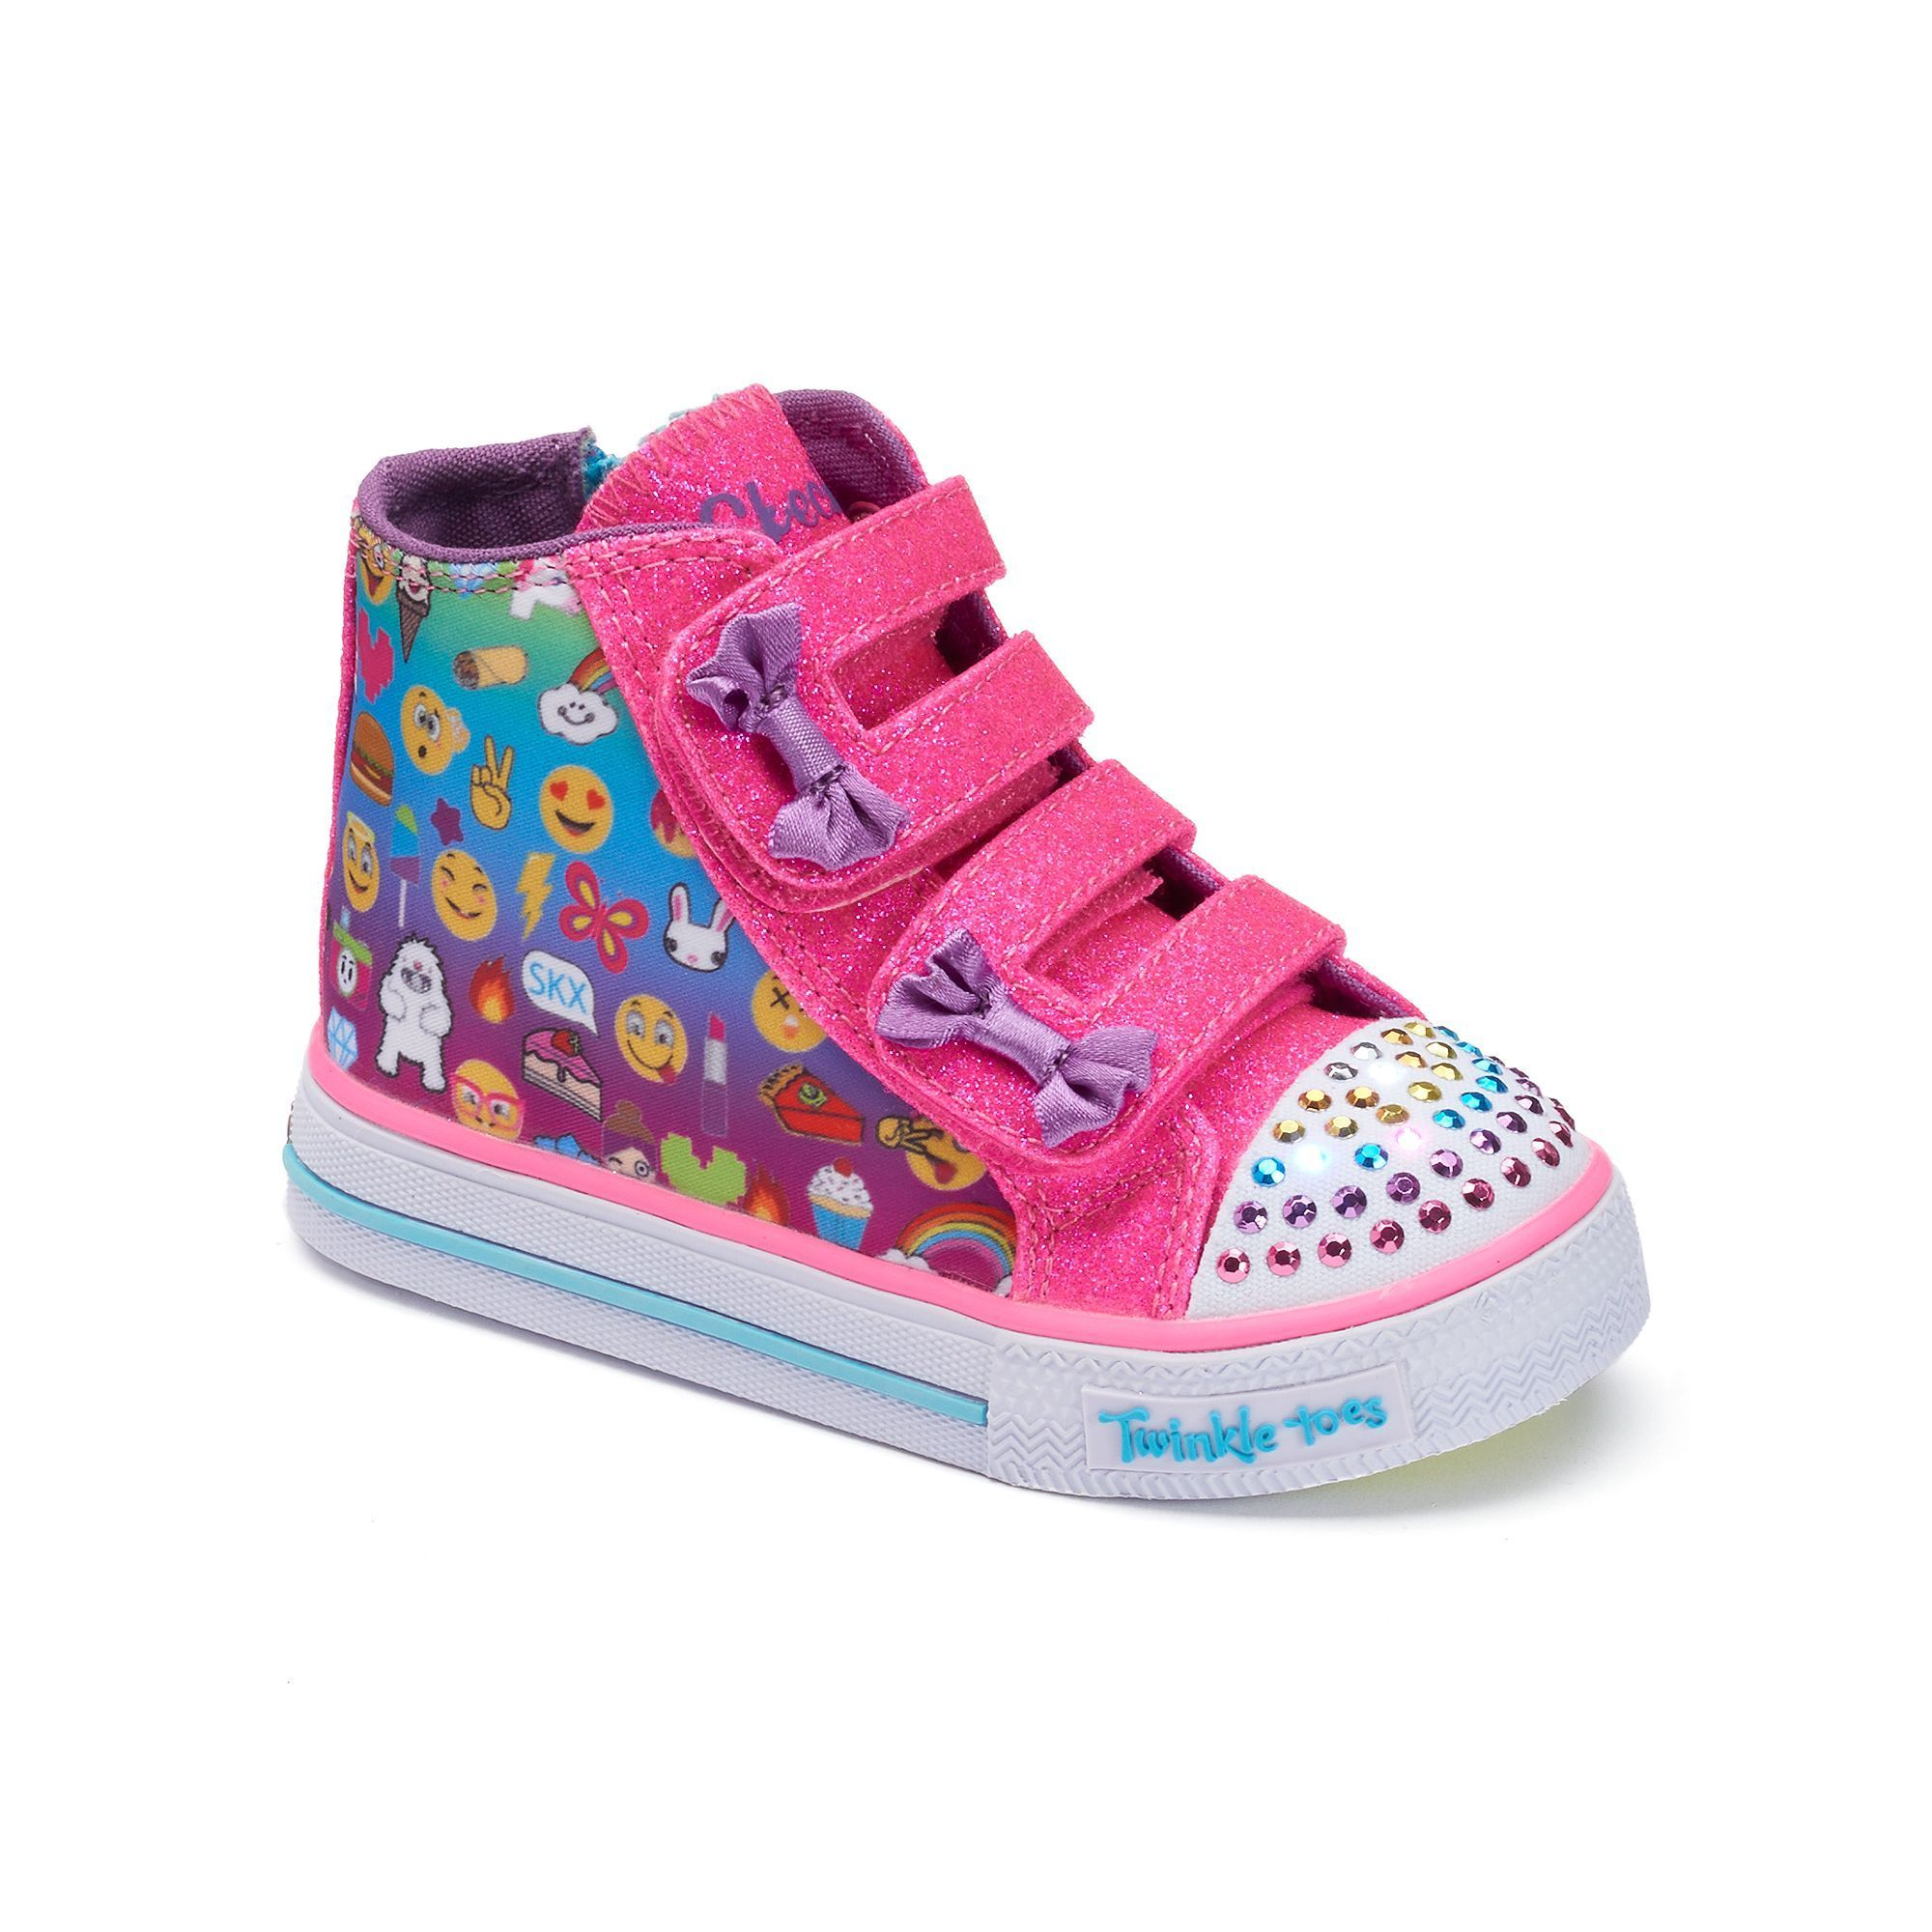 skechers twinkle toes toddler size 6